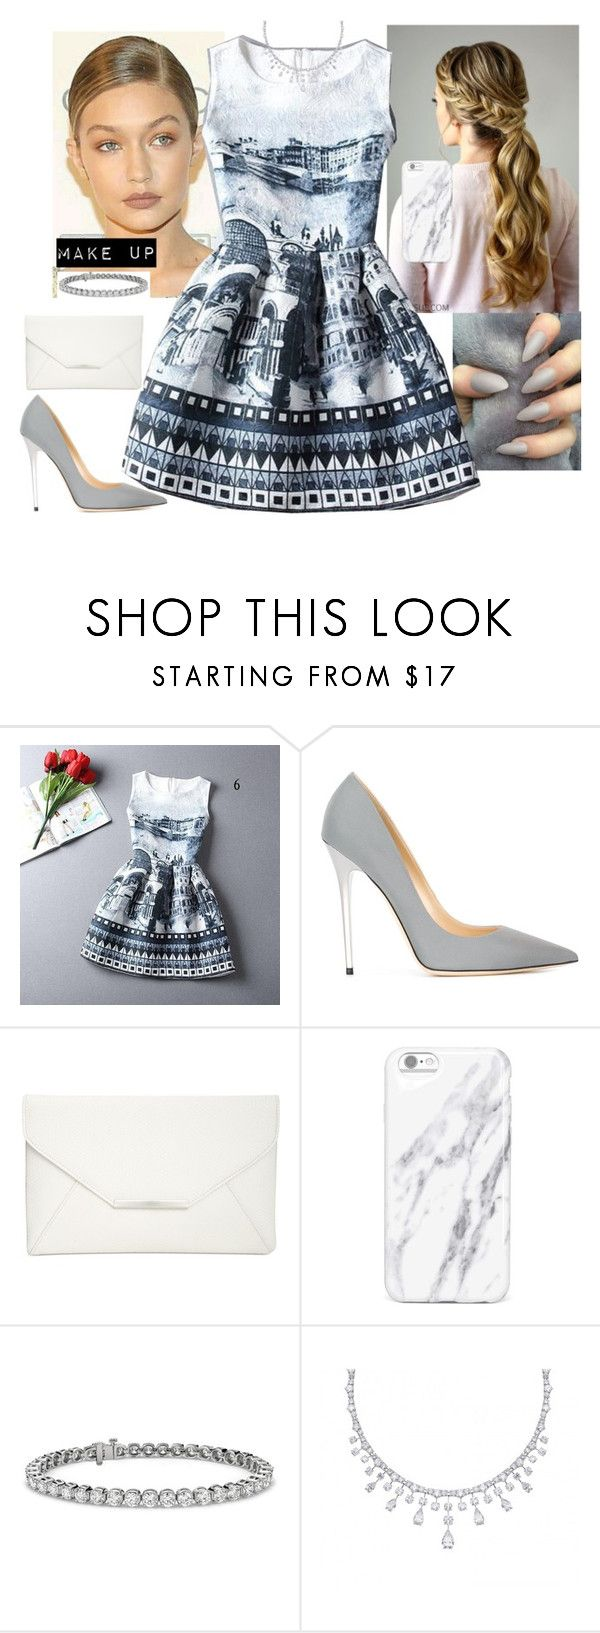 """Untitled #124"" by fatyhnrqz94 ❤ liked on Polyvore featuring Rainbeam, Jimmy Choo, Style & Co. and Blue Nile"